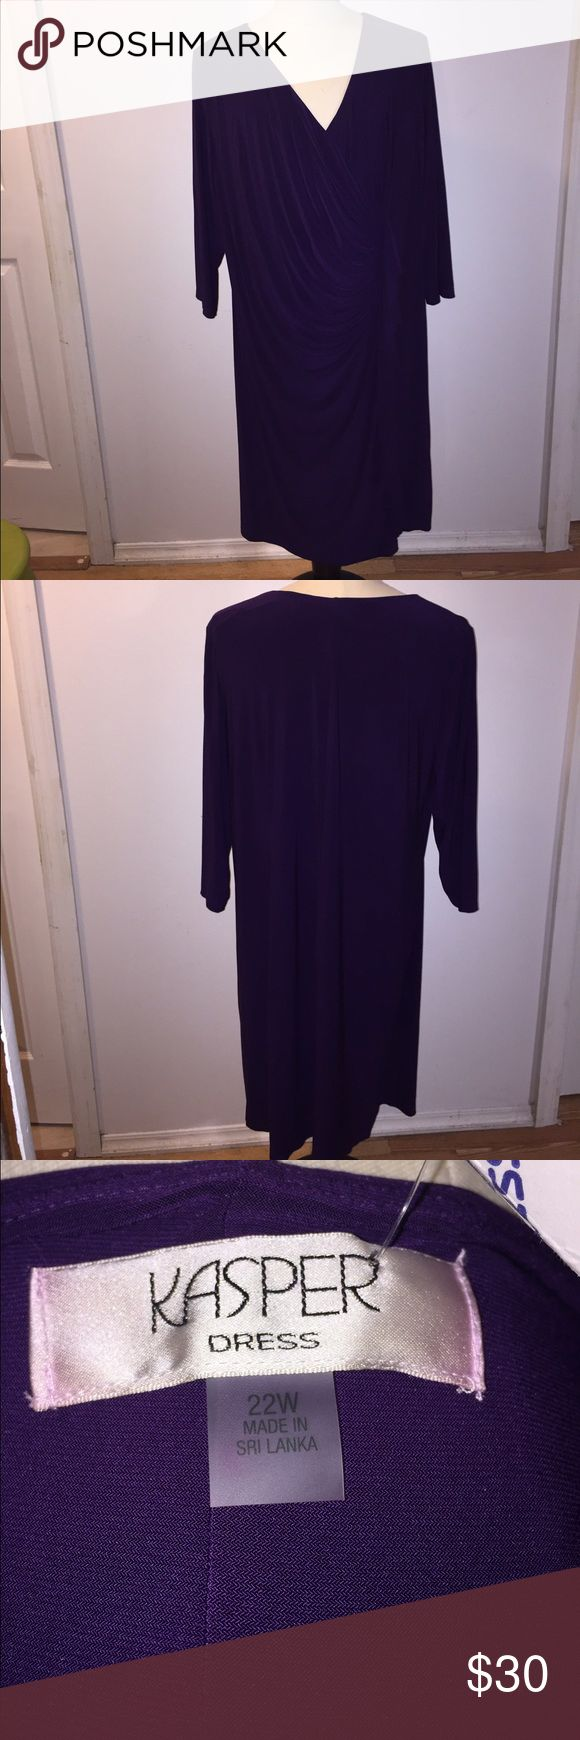 Purple plus size Dress Awesome dress with a 3/4 length sleeve and a cascading ruffle detail! You can where this to any occasion! Figure flattering!!! Kasper Dresses Midi